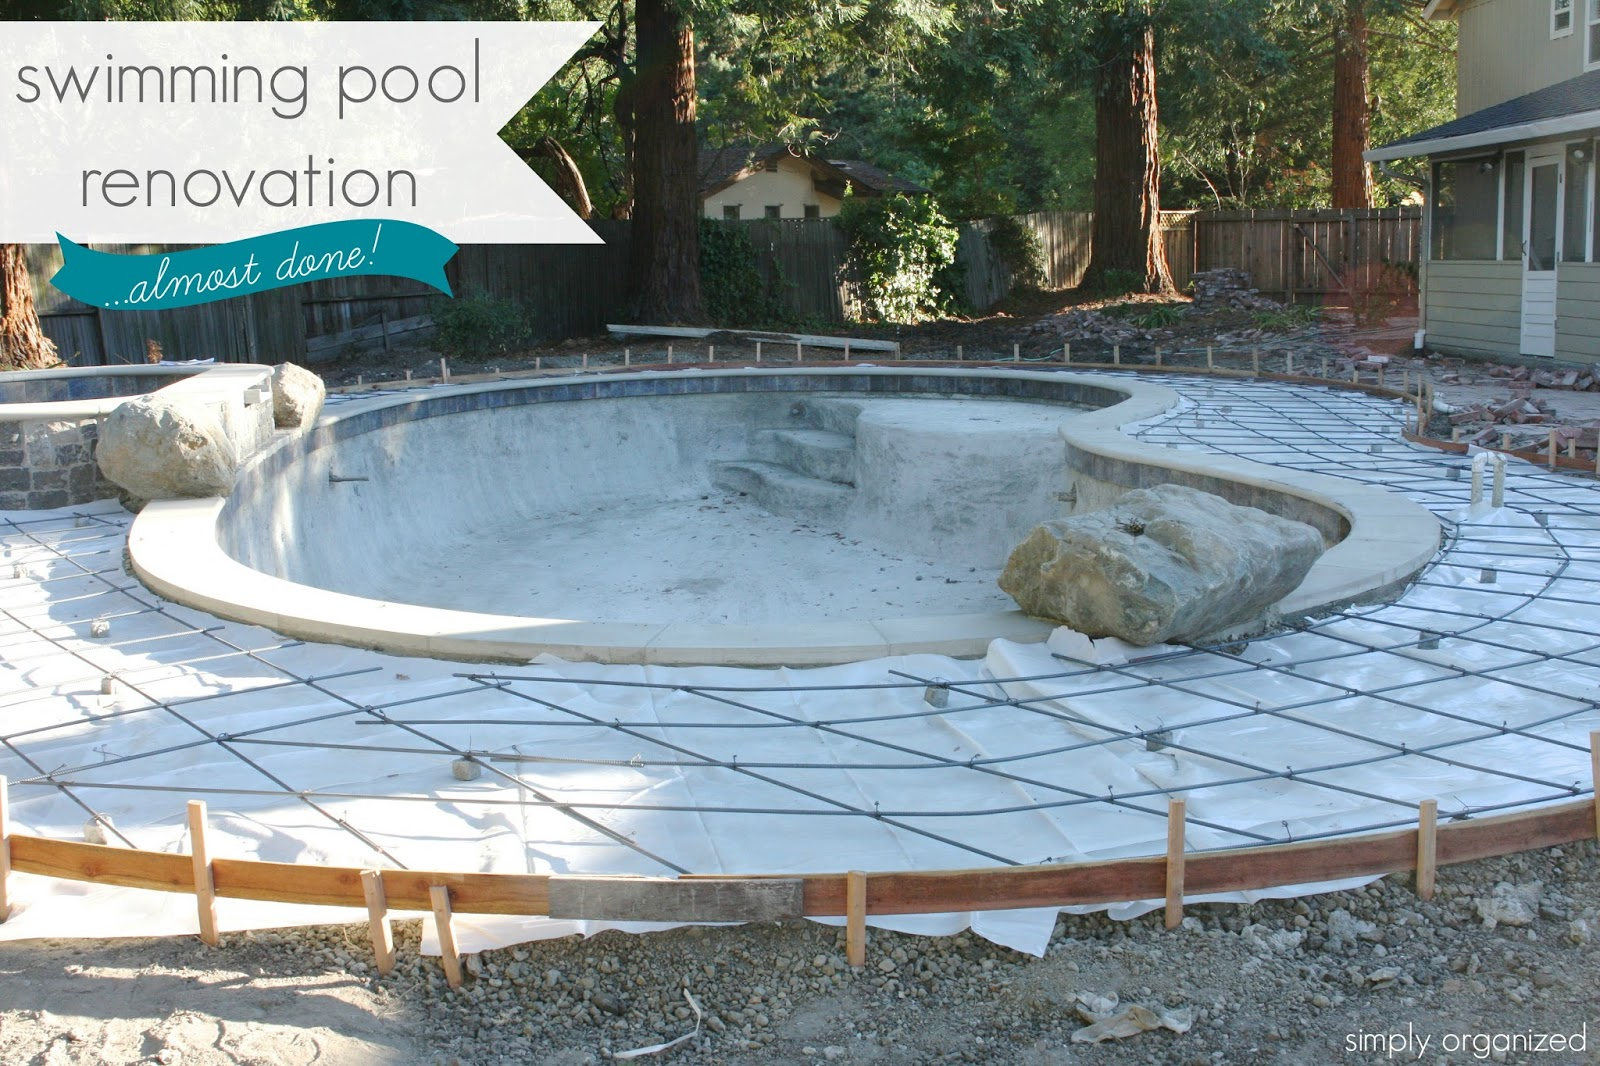 simply organized swimming pool renovation update